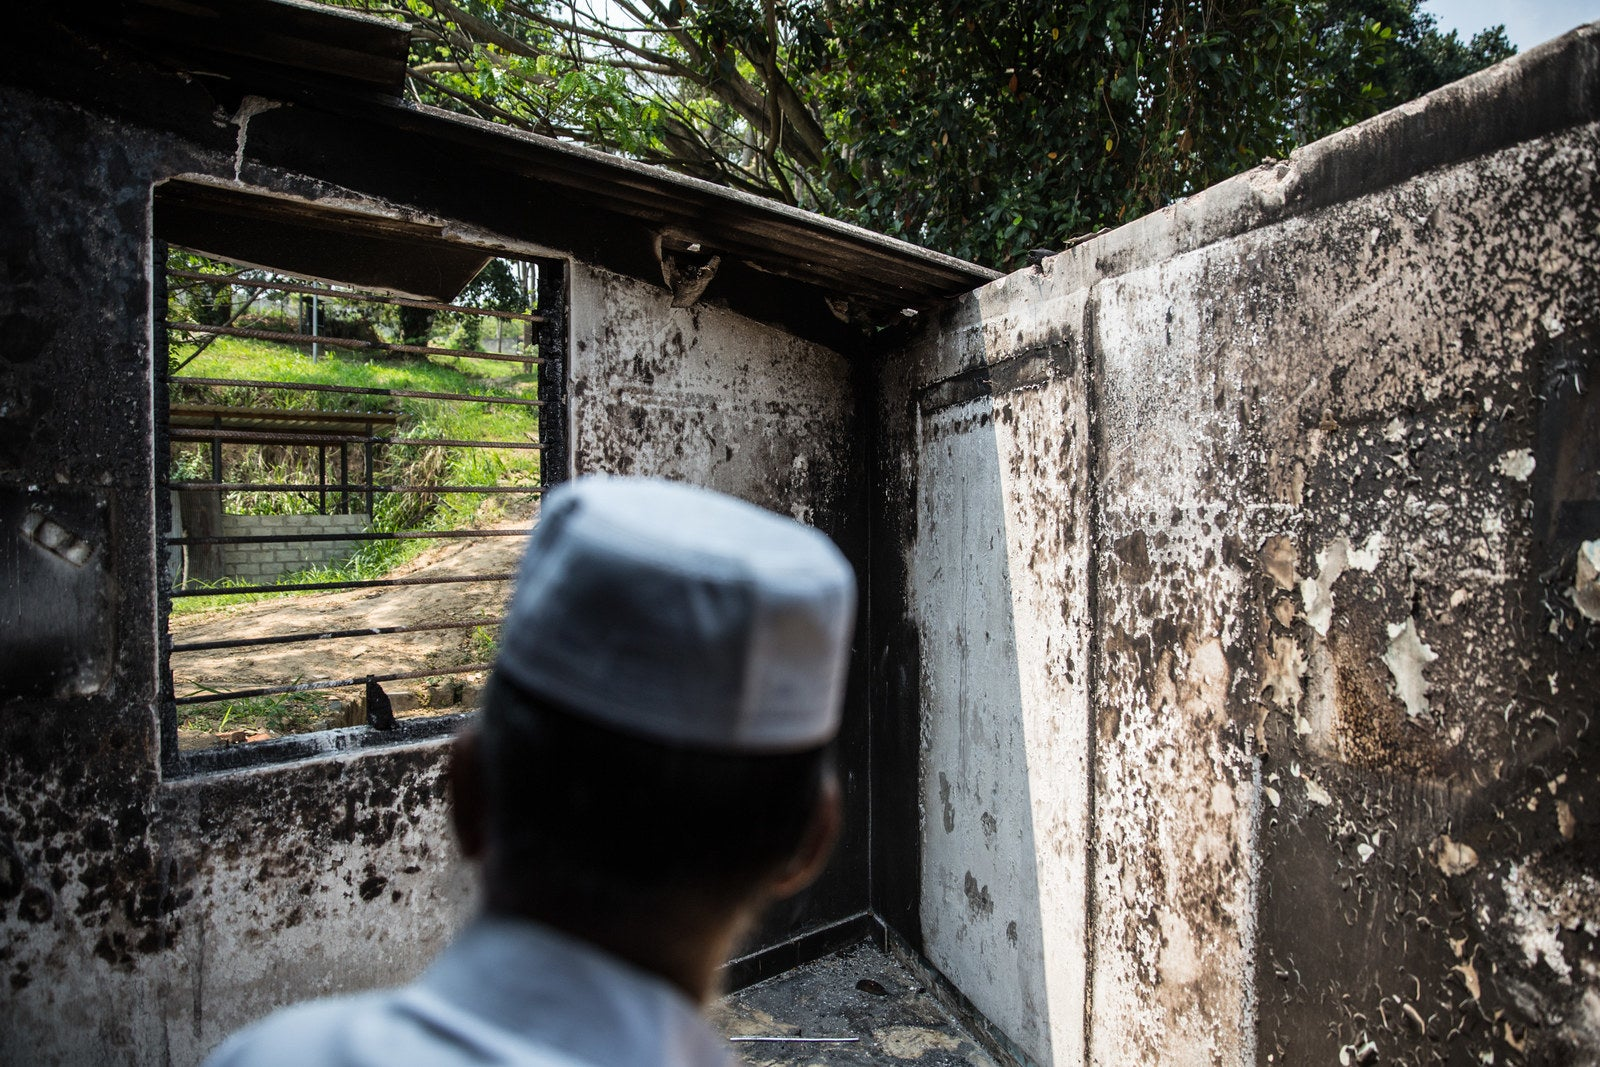 A man looks out of a burned out window at Masjidul Lafir Jummah Mosque in Digana. The attacks there were carried out by Buddhist mobs only a few weeks earlier on March 7, leaving many homes and shops destroyed and one young man dead.